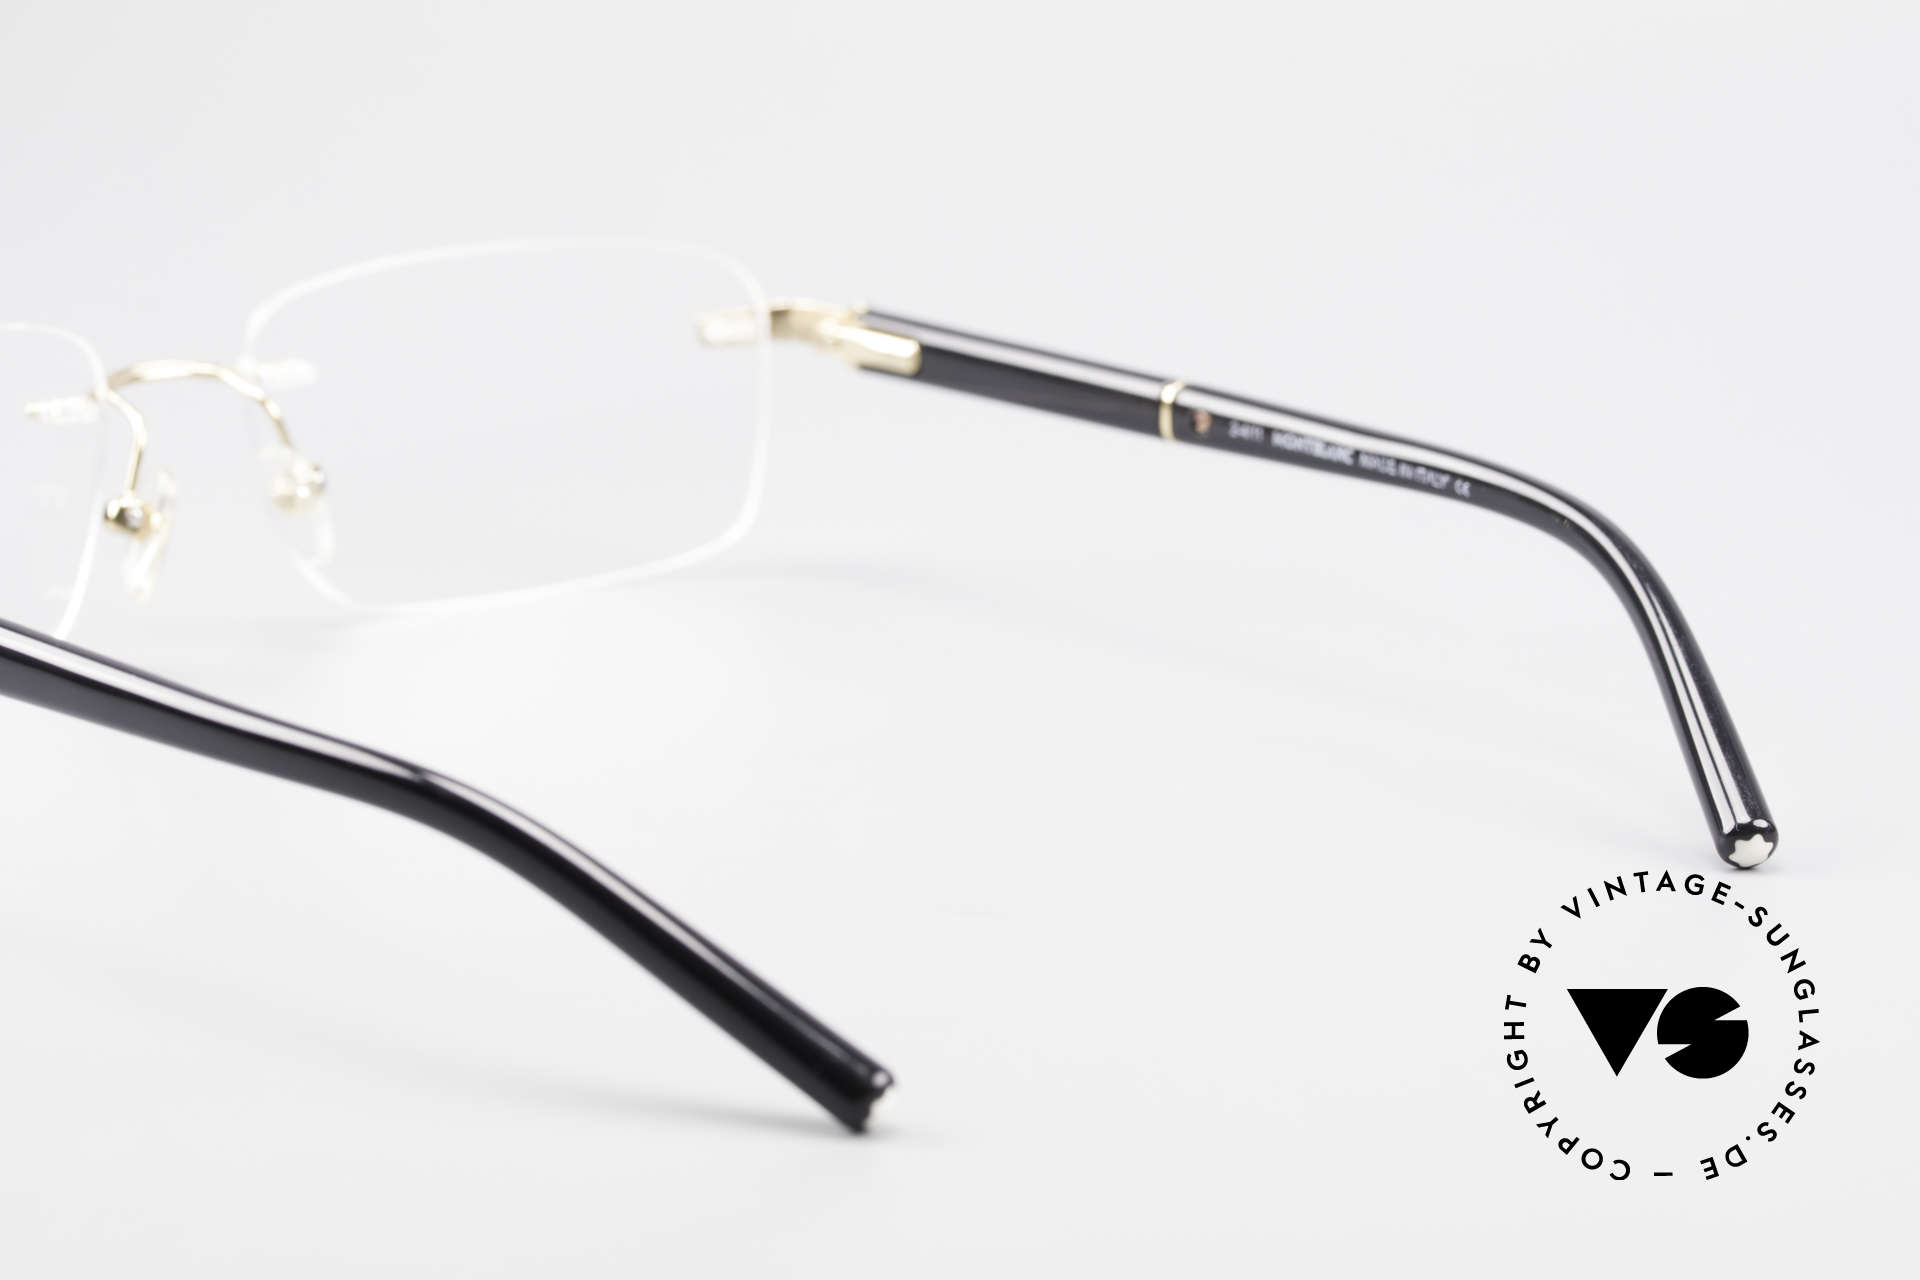 Montblanc MB337 Rimless Eyeglasses Gold-Plated, NO RETRO glasses, but an old ORIGINAL from 1999, Made for Men